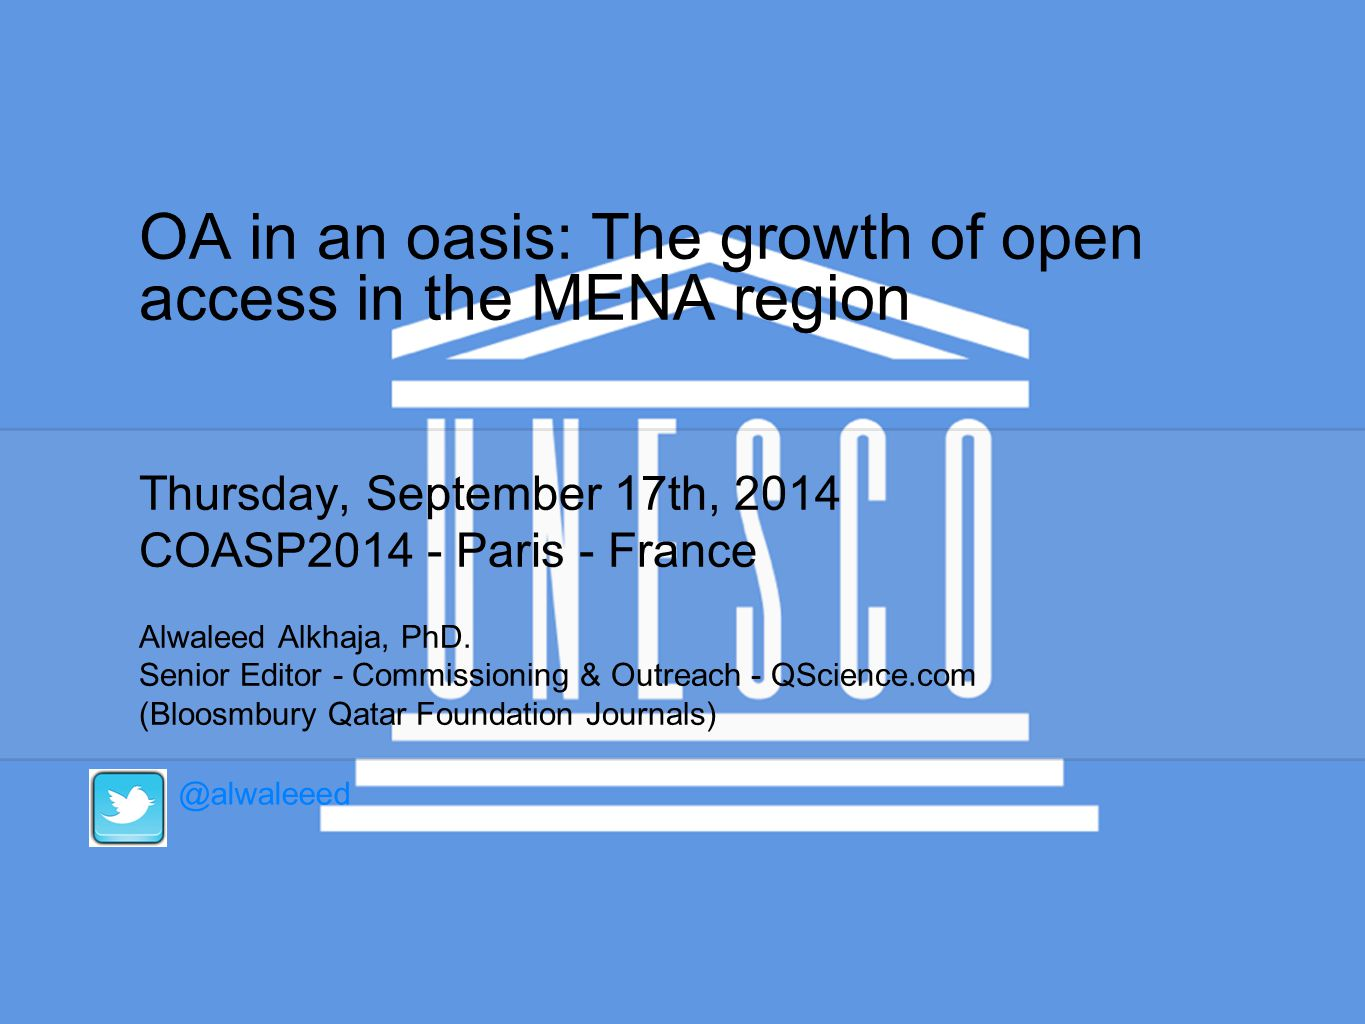 OA in an oasis: The growth of open access in the MENA region Thursday, September 17th, 2014 COASP2014 - Paris - France Alwaleed Alkhaja, PhD.